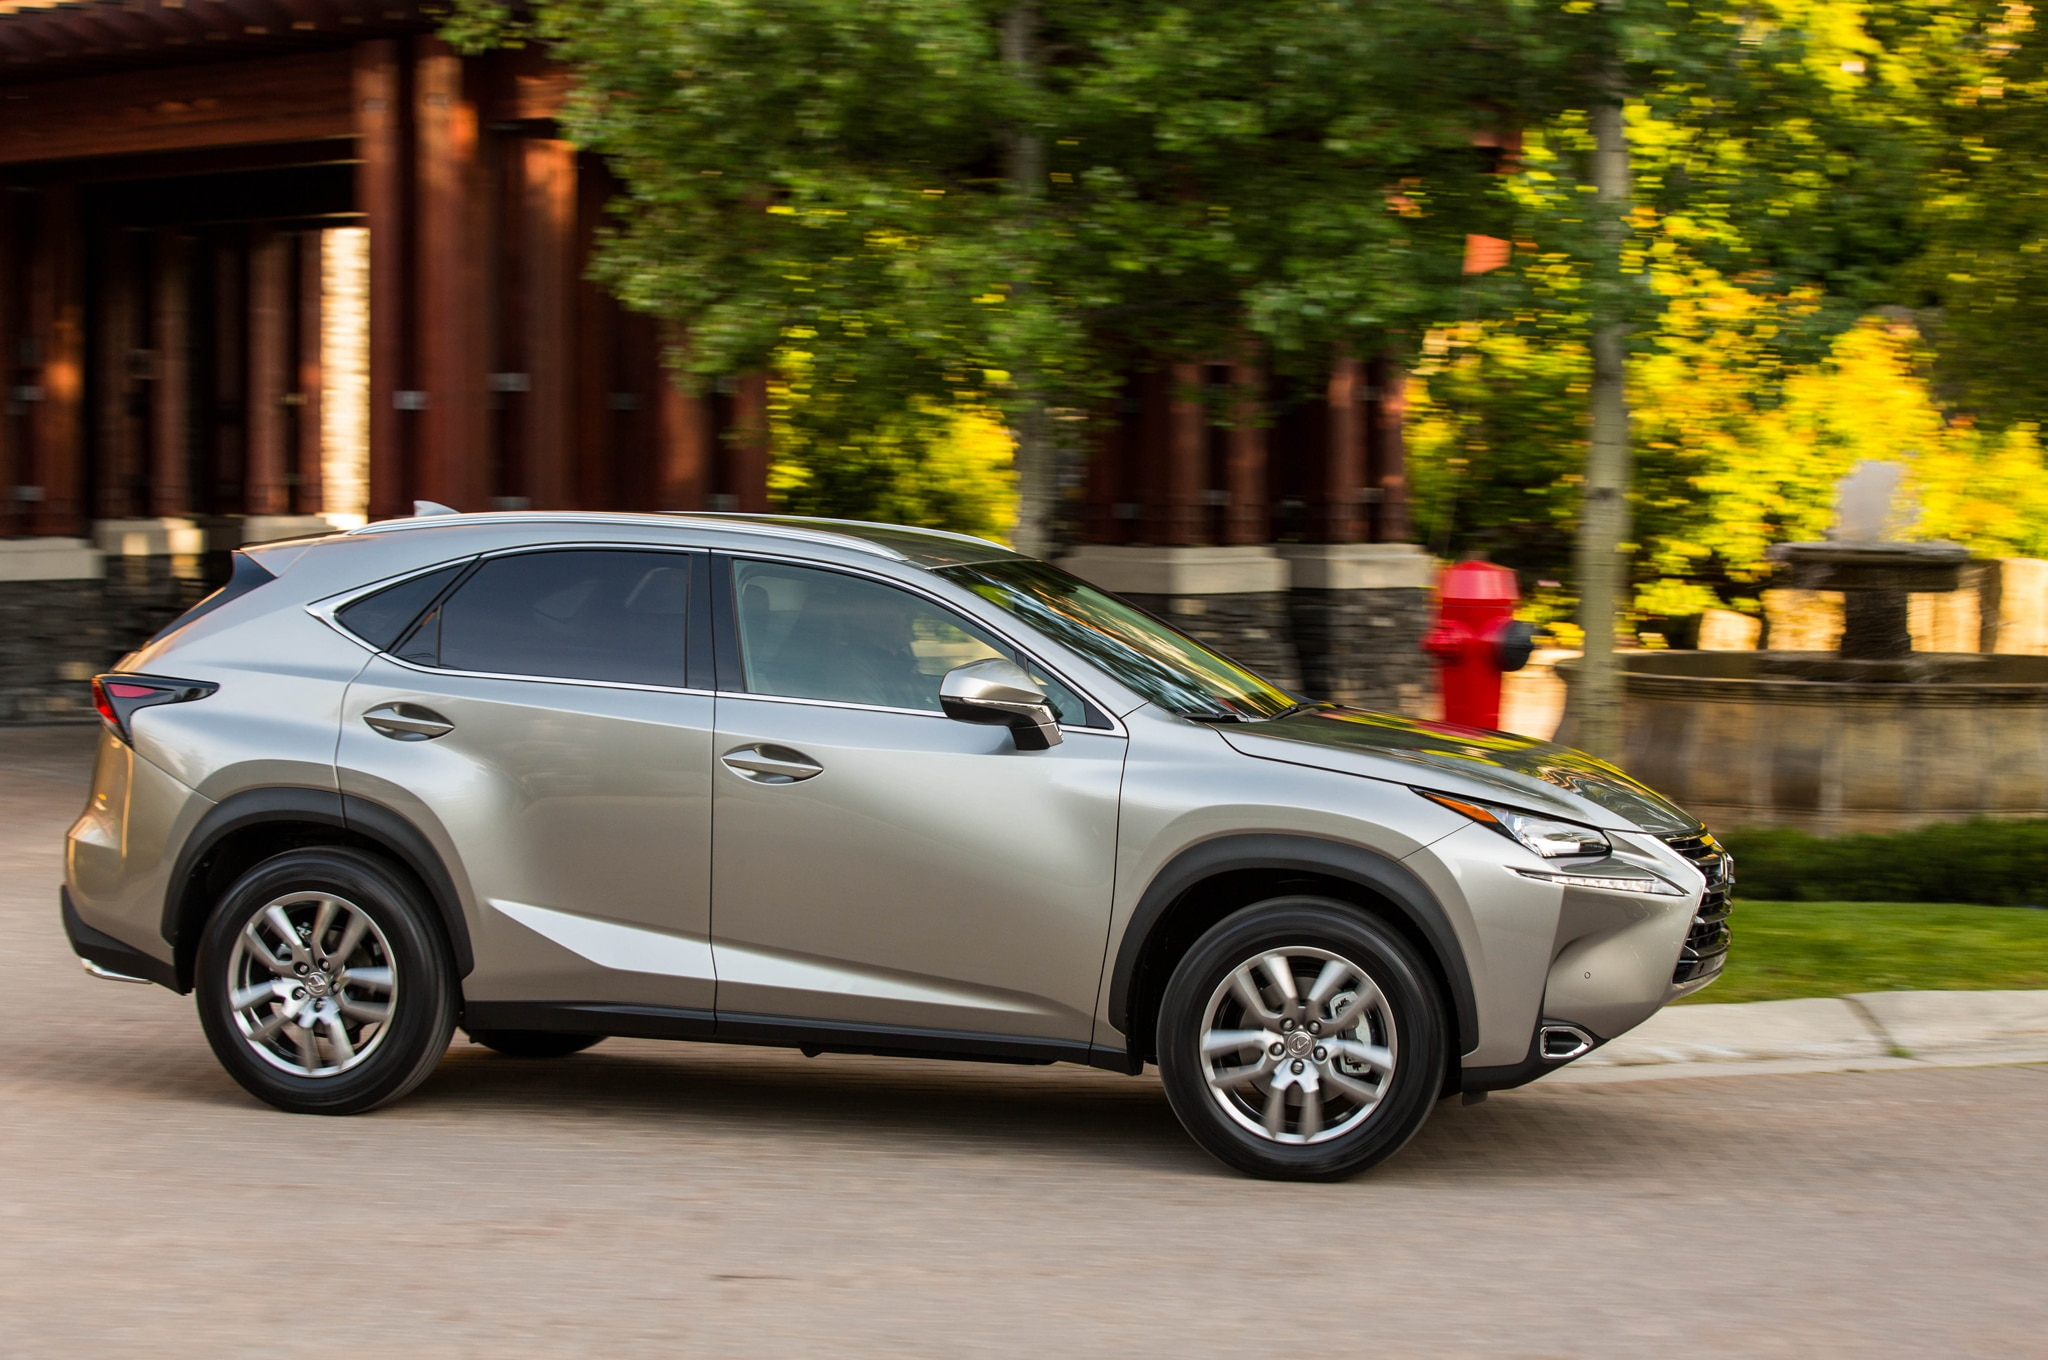 http://st.automobilemag.com/uploads/sites/11/2014/07/2015-Lexus-NX-200t-front-side-in-motion.jpg